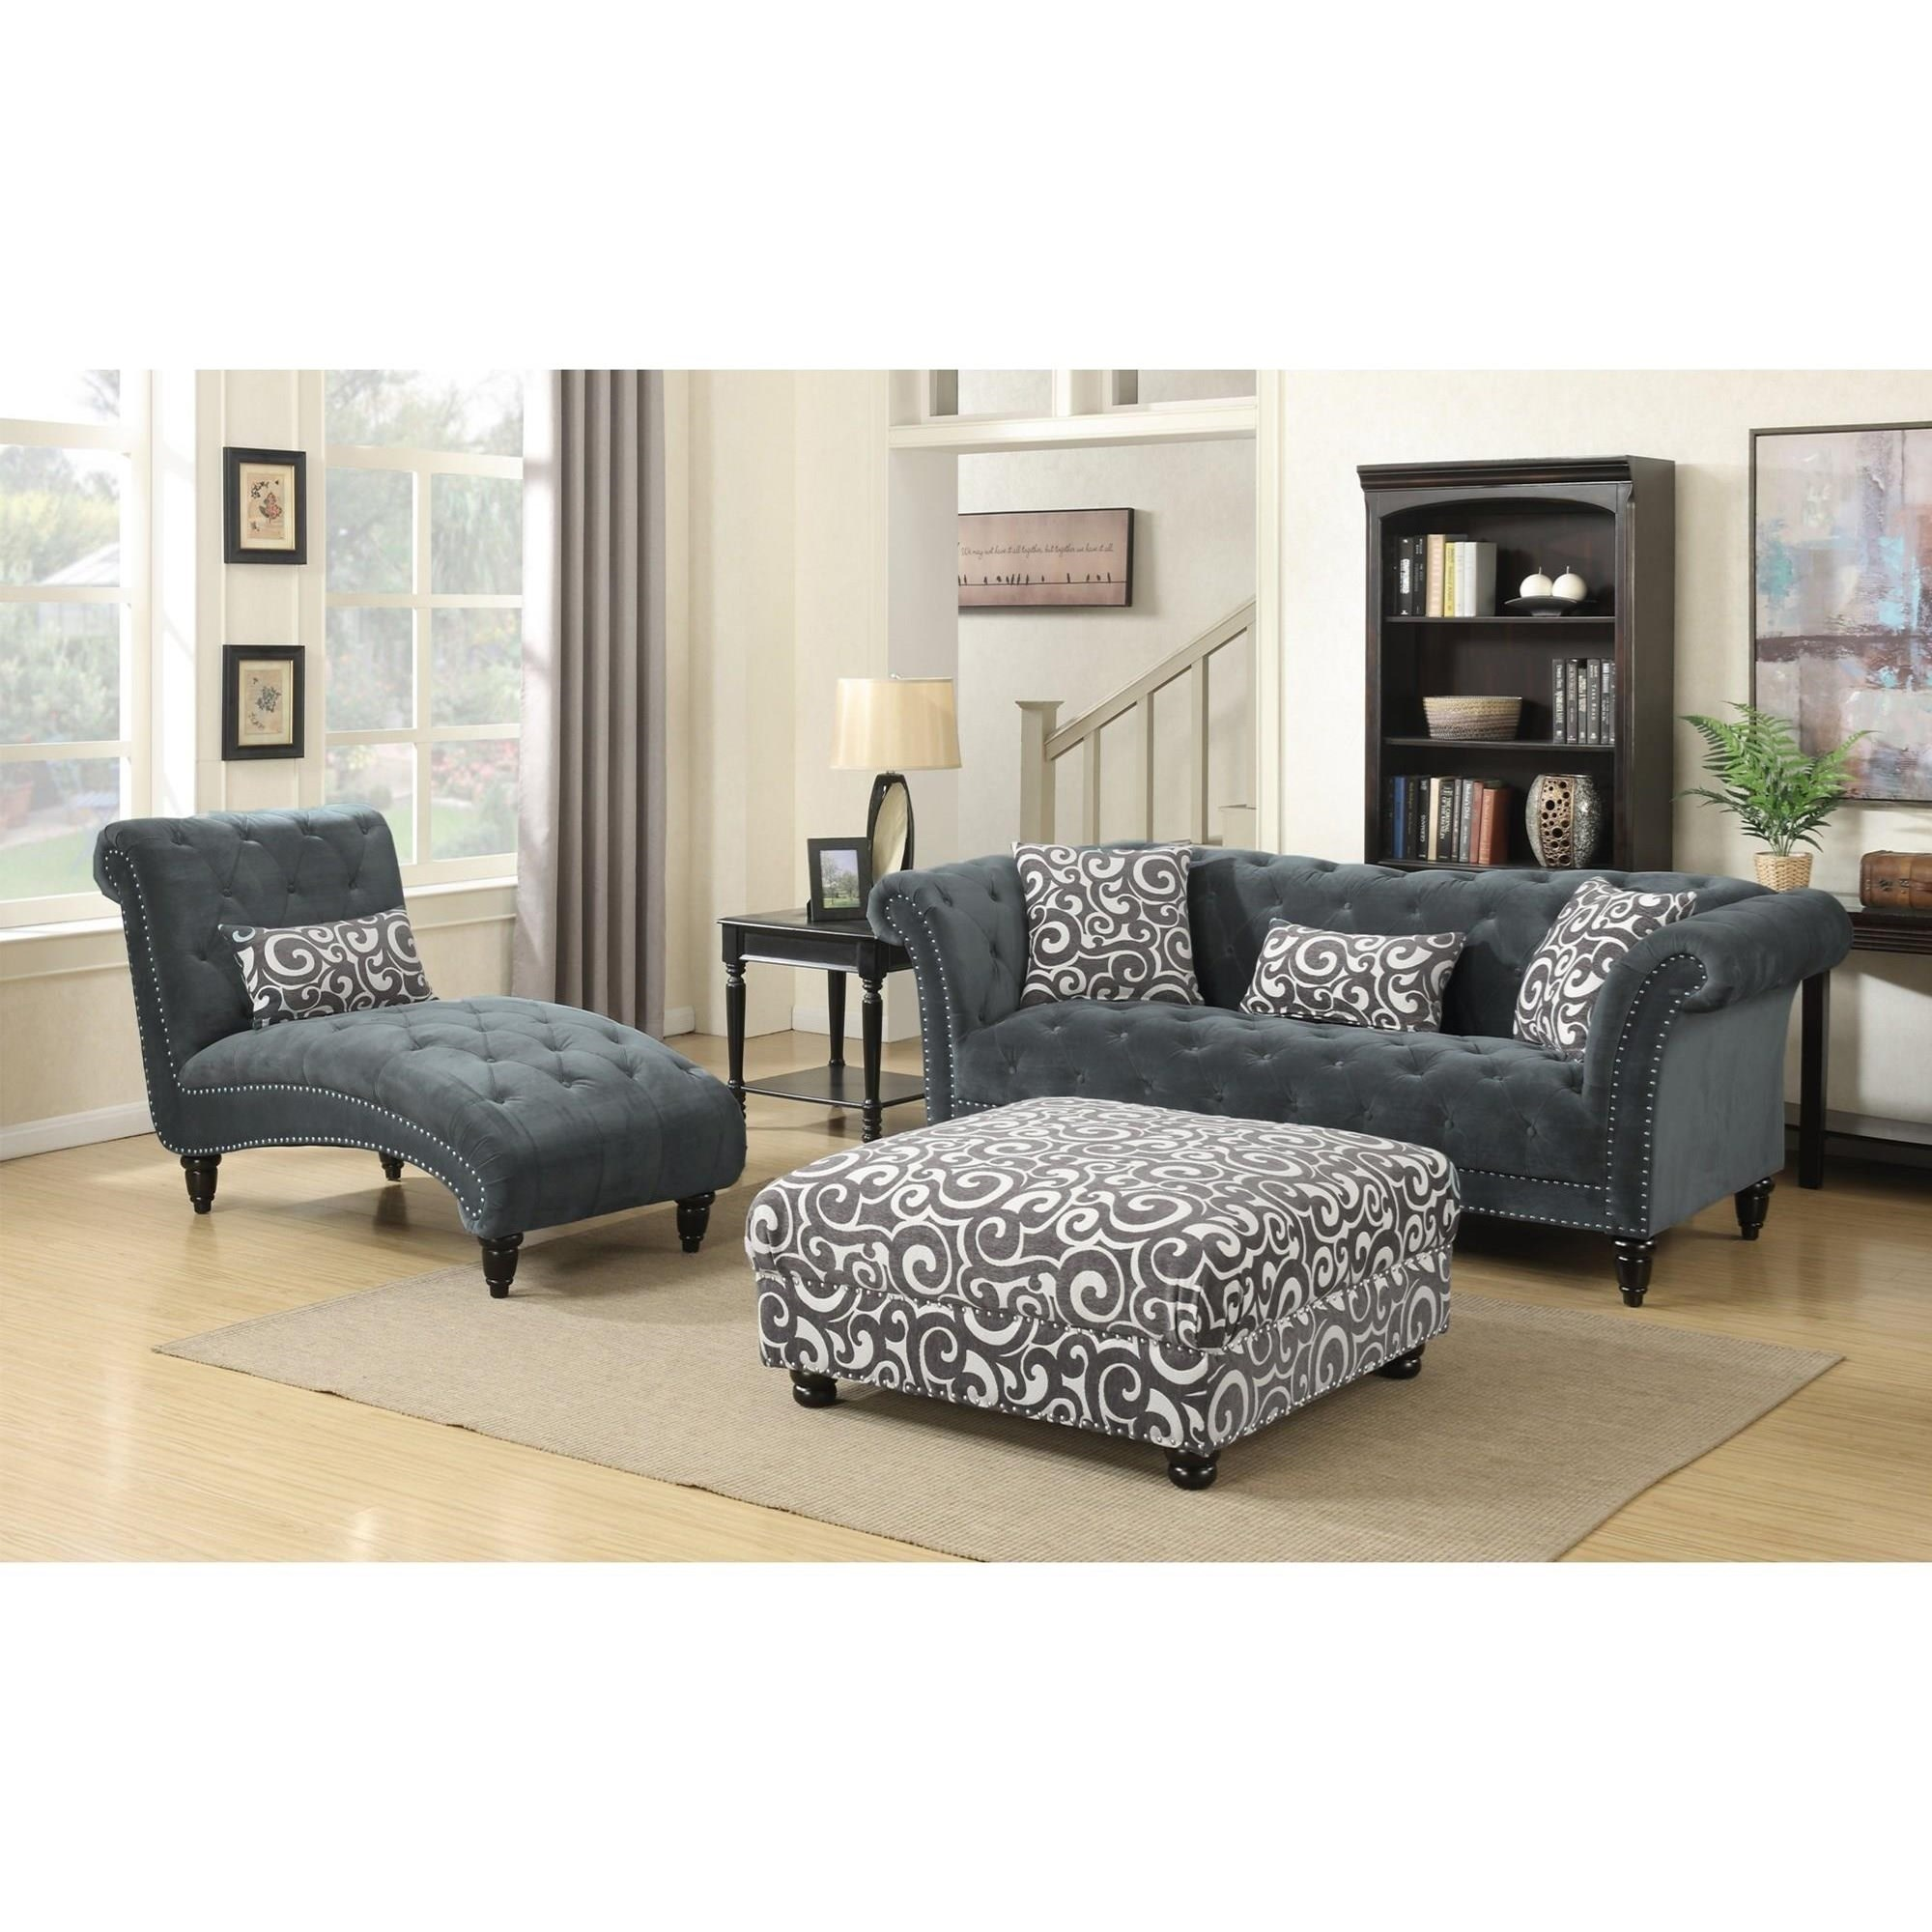 Twain 3-Piece Living Room Group by Elements International at Lindy's Furniture Company